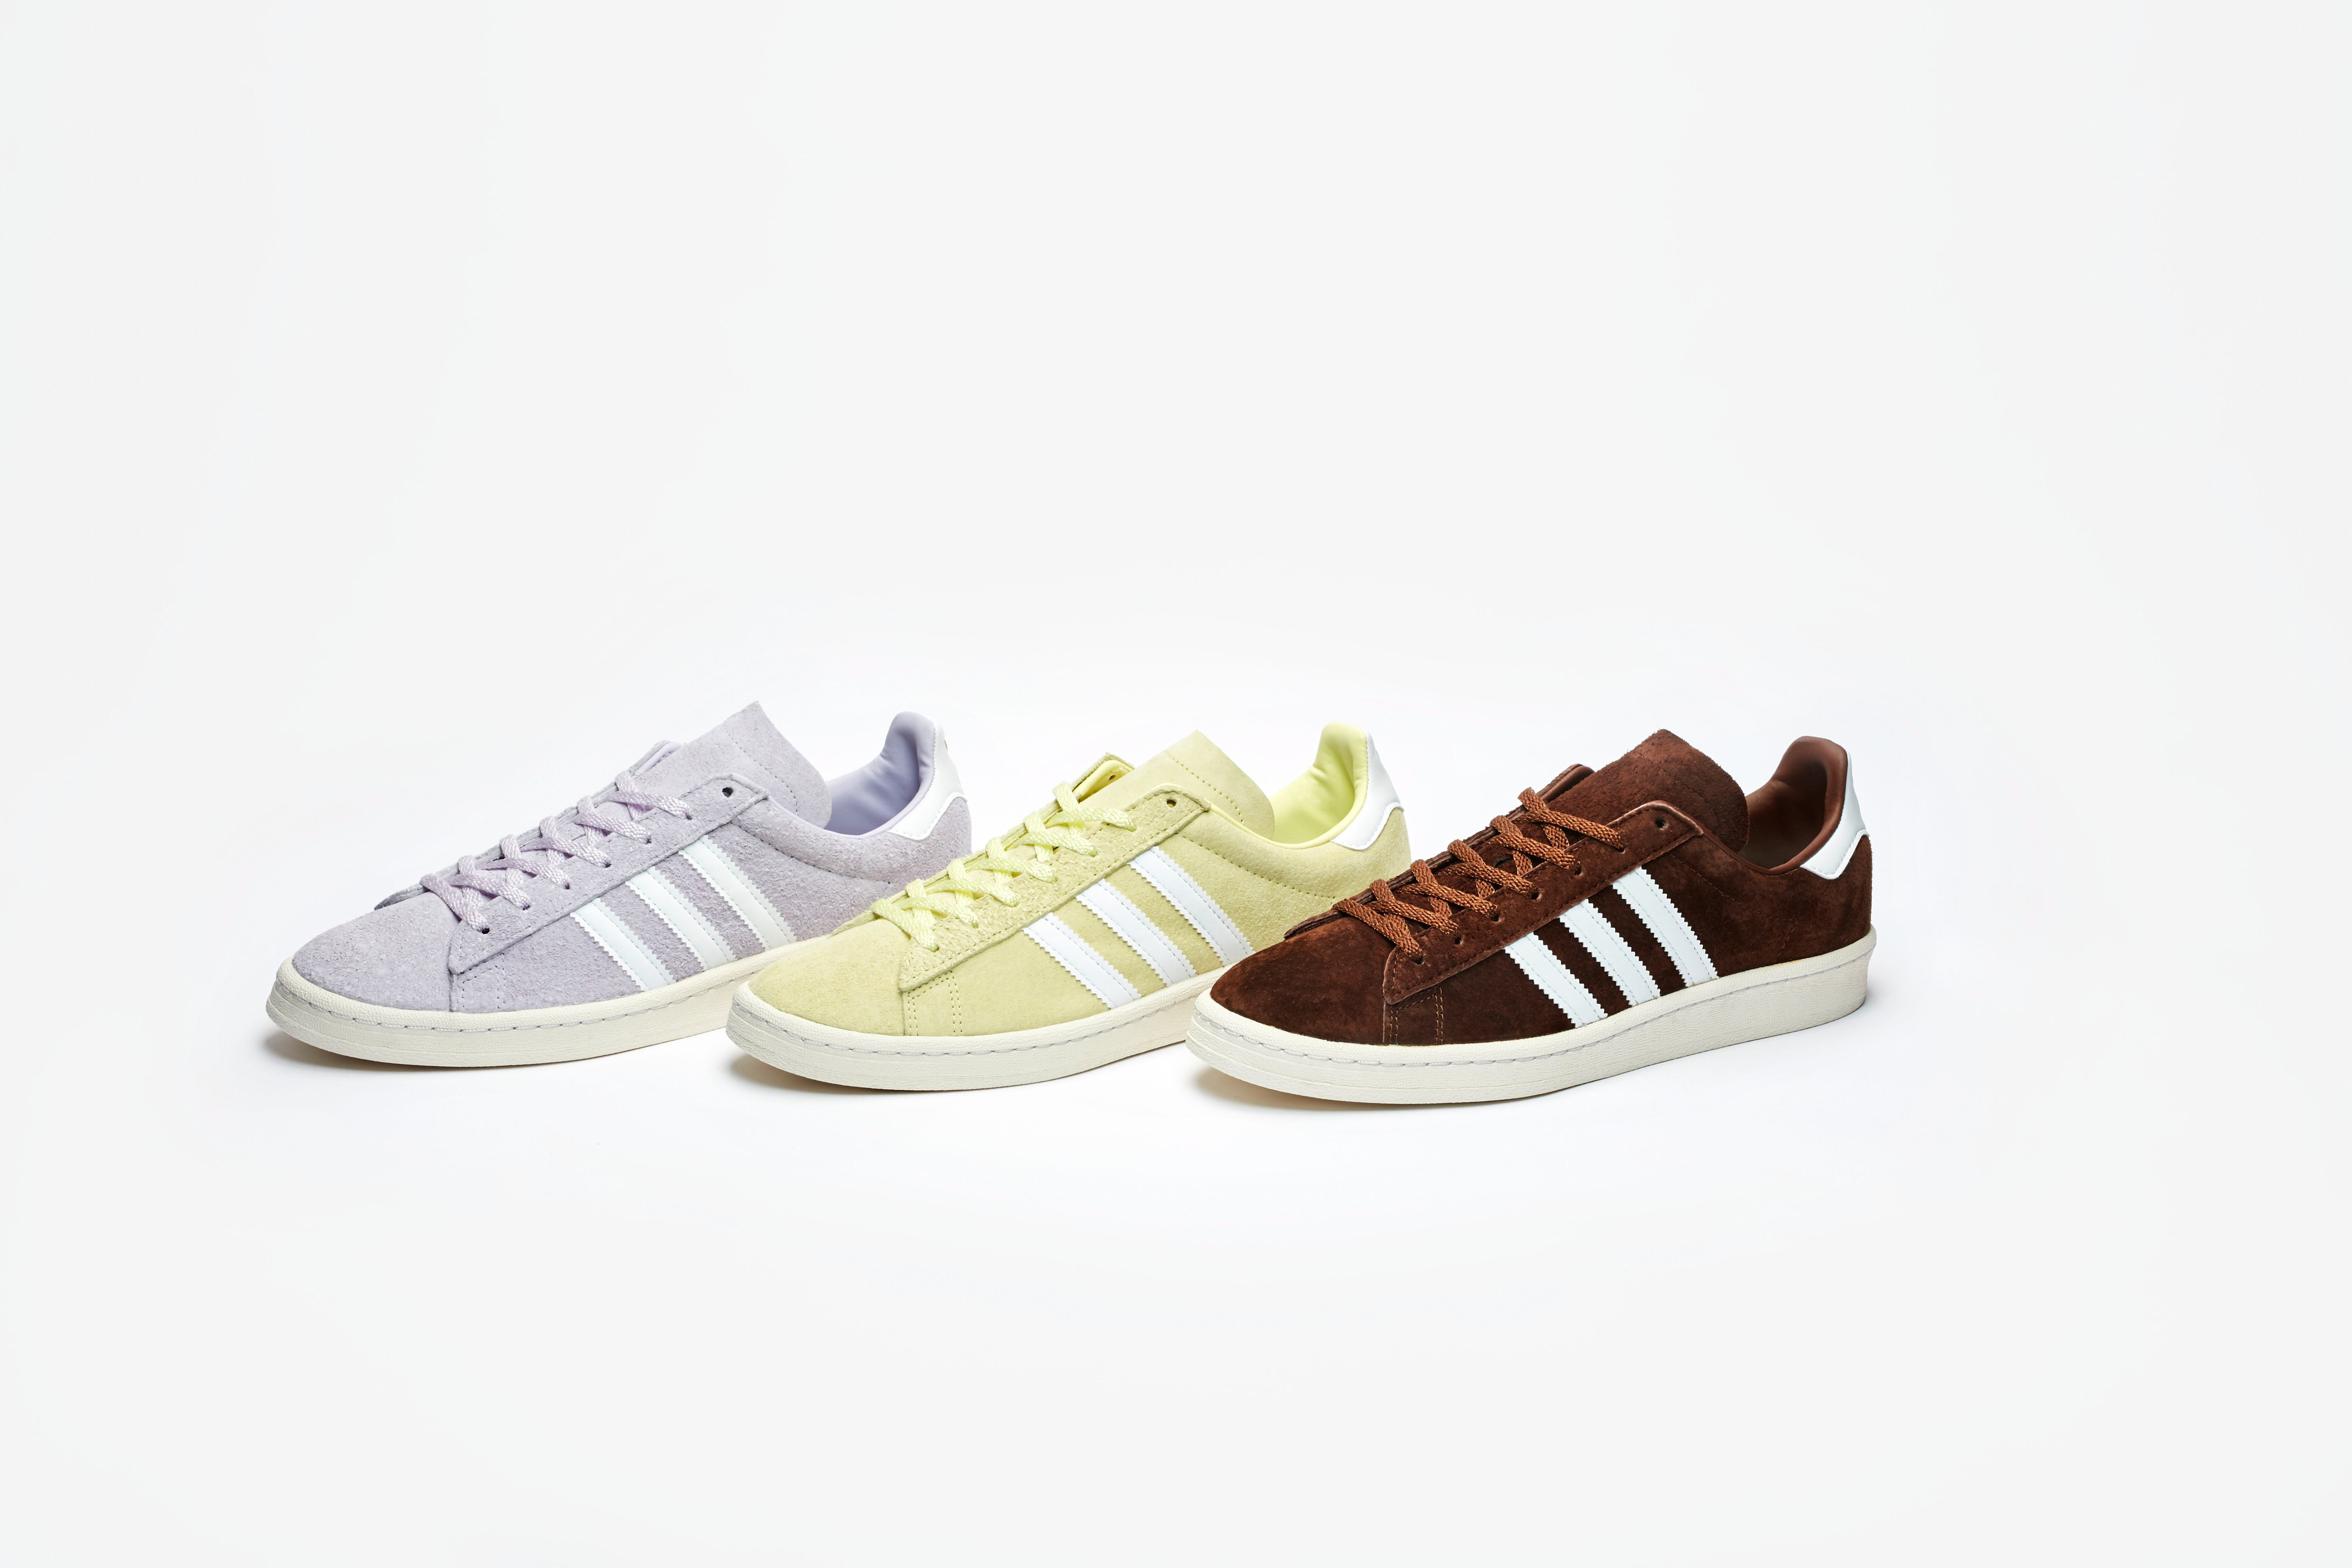 The adidas Campus makes its debut with